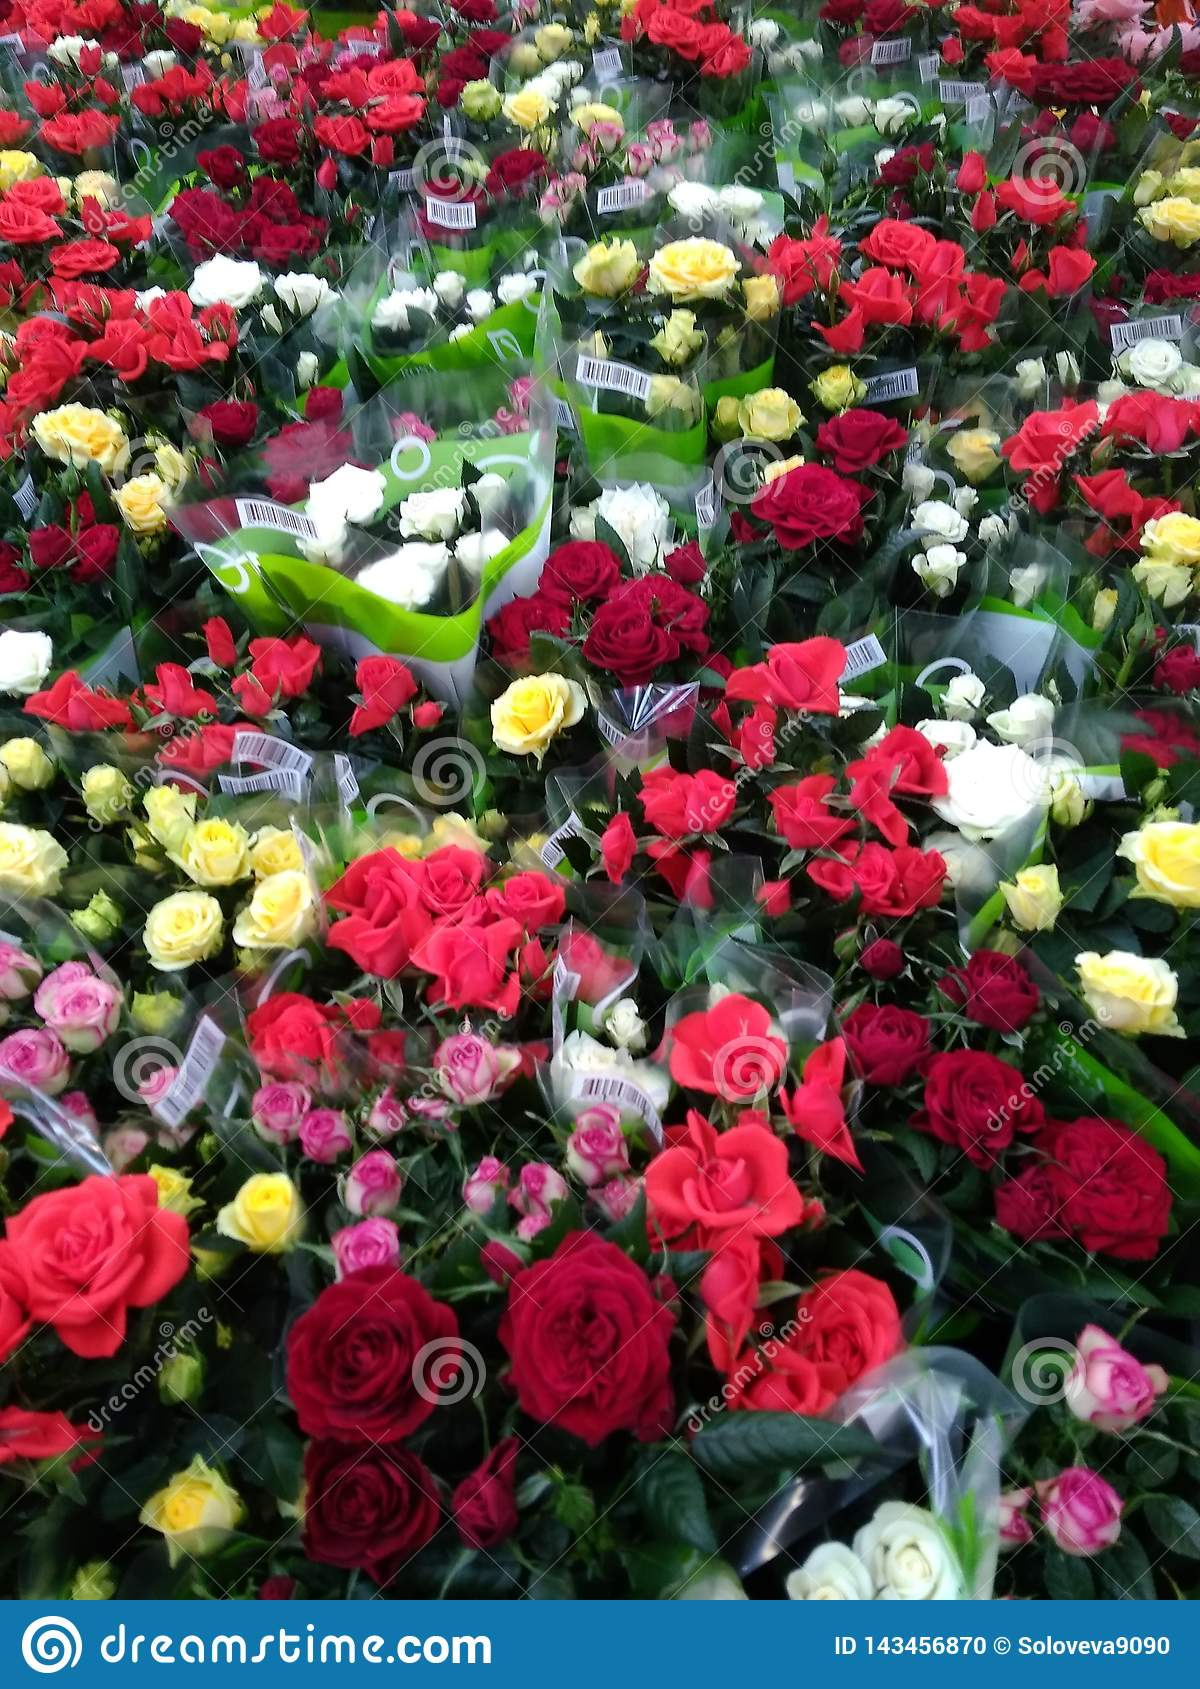 Many roses of different colors